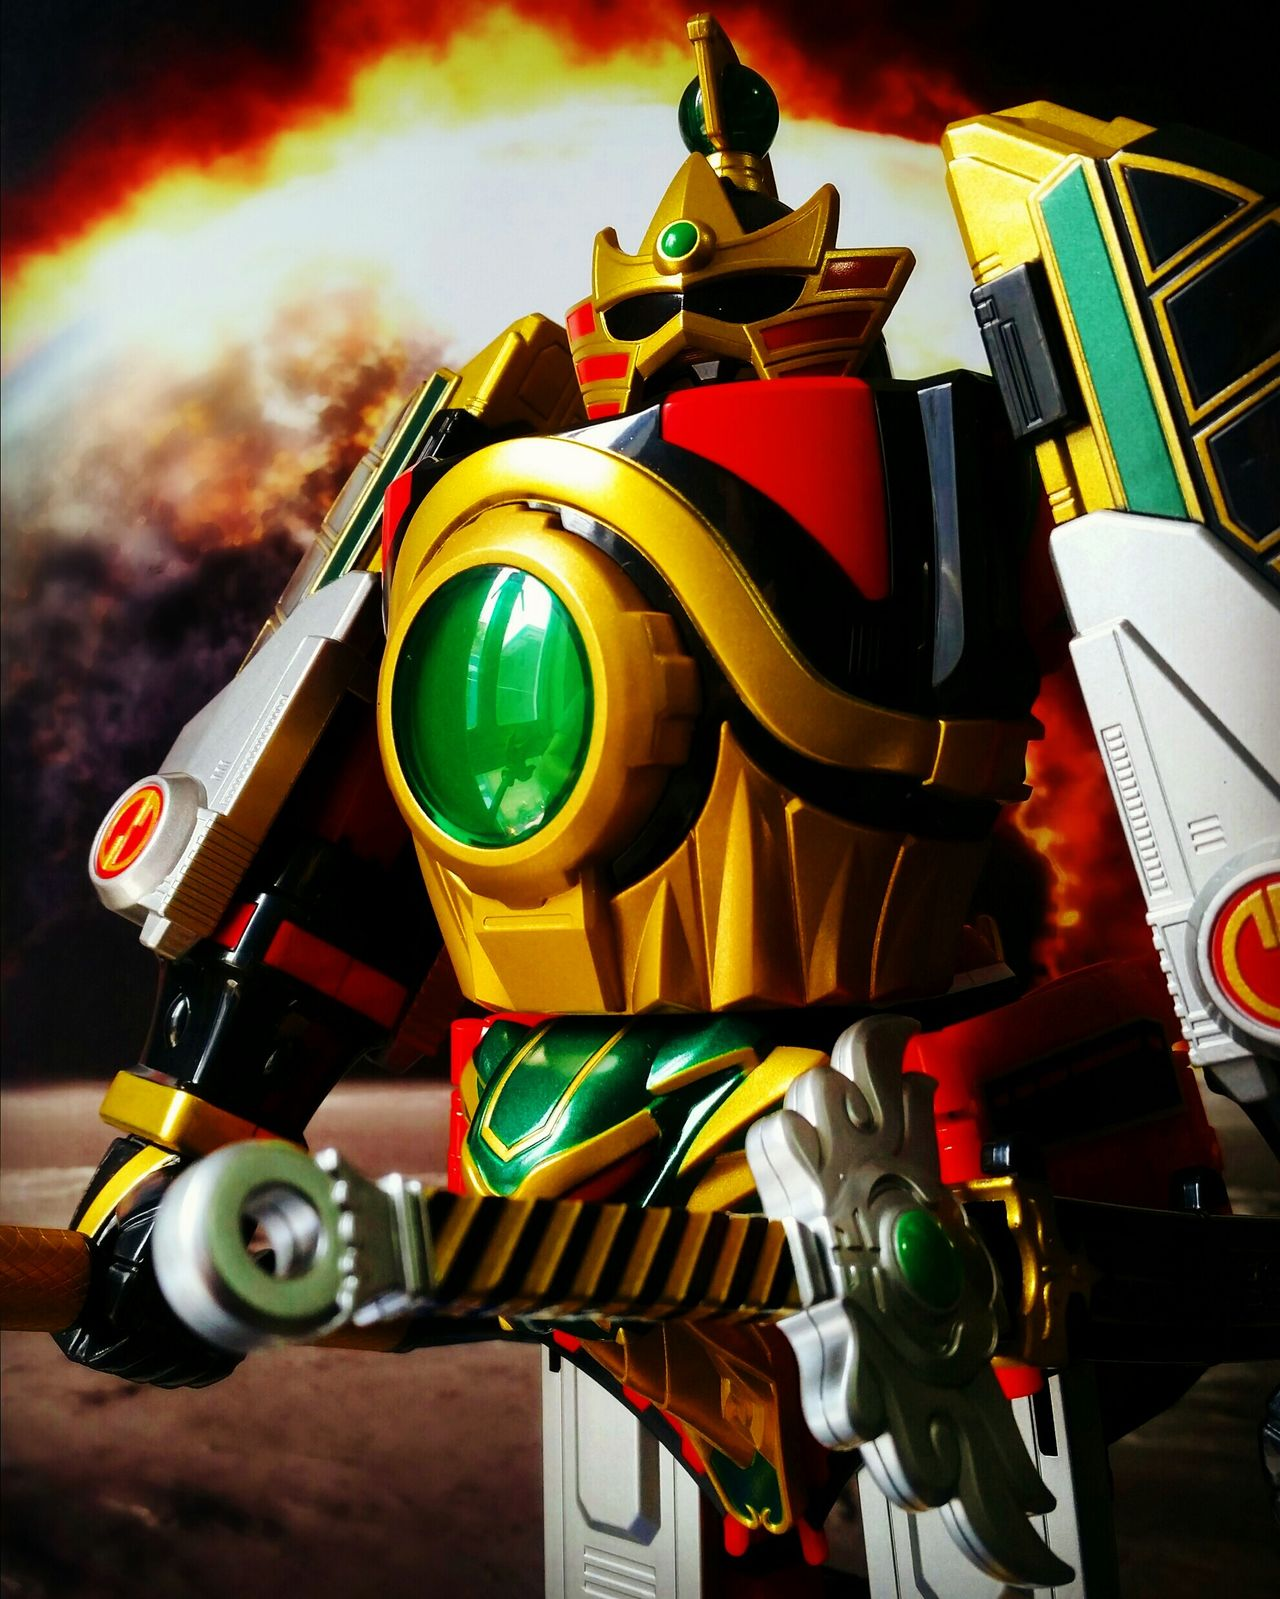 Thunder Megazord Power Rangers Thunder Megazord MegaZord Toys Toy Photography